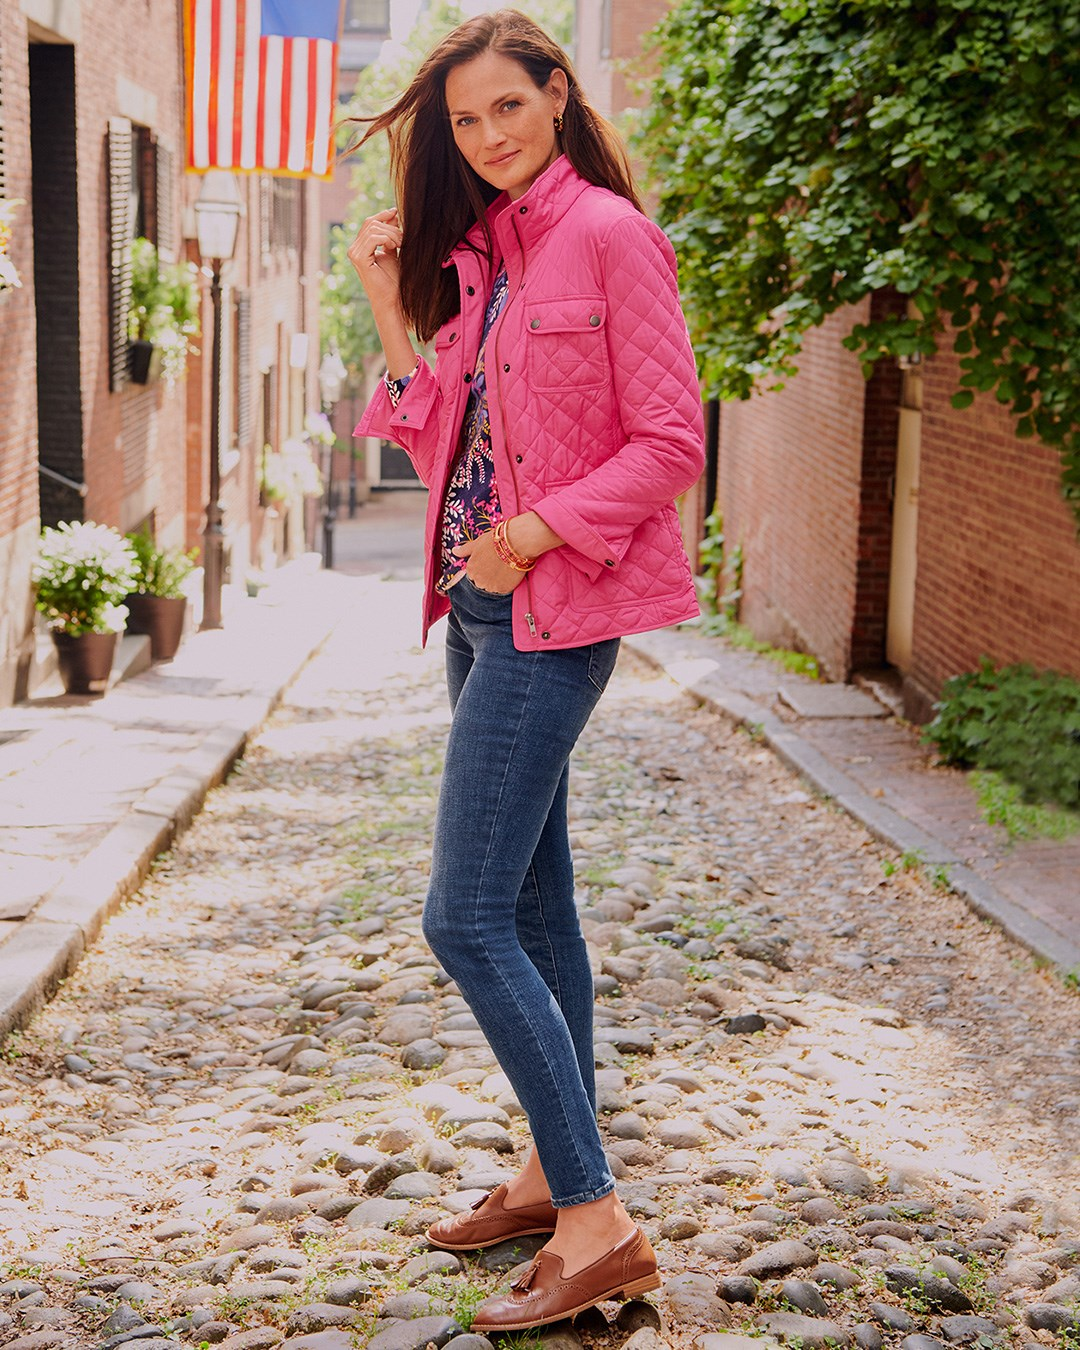 Fall Styles are Here!